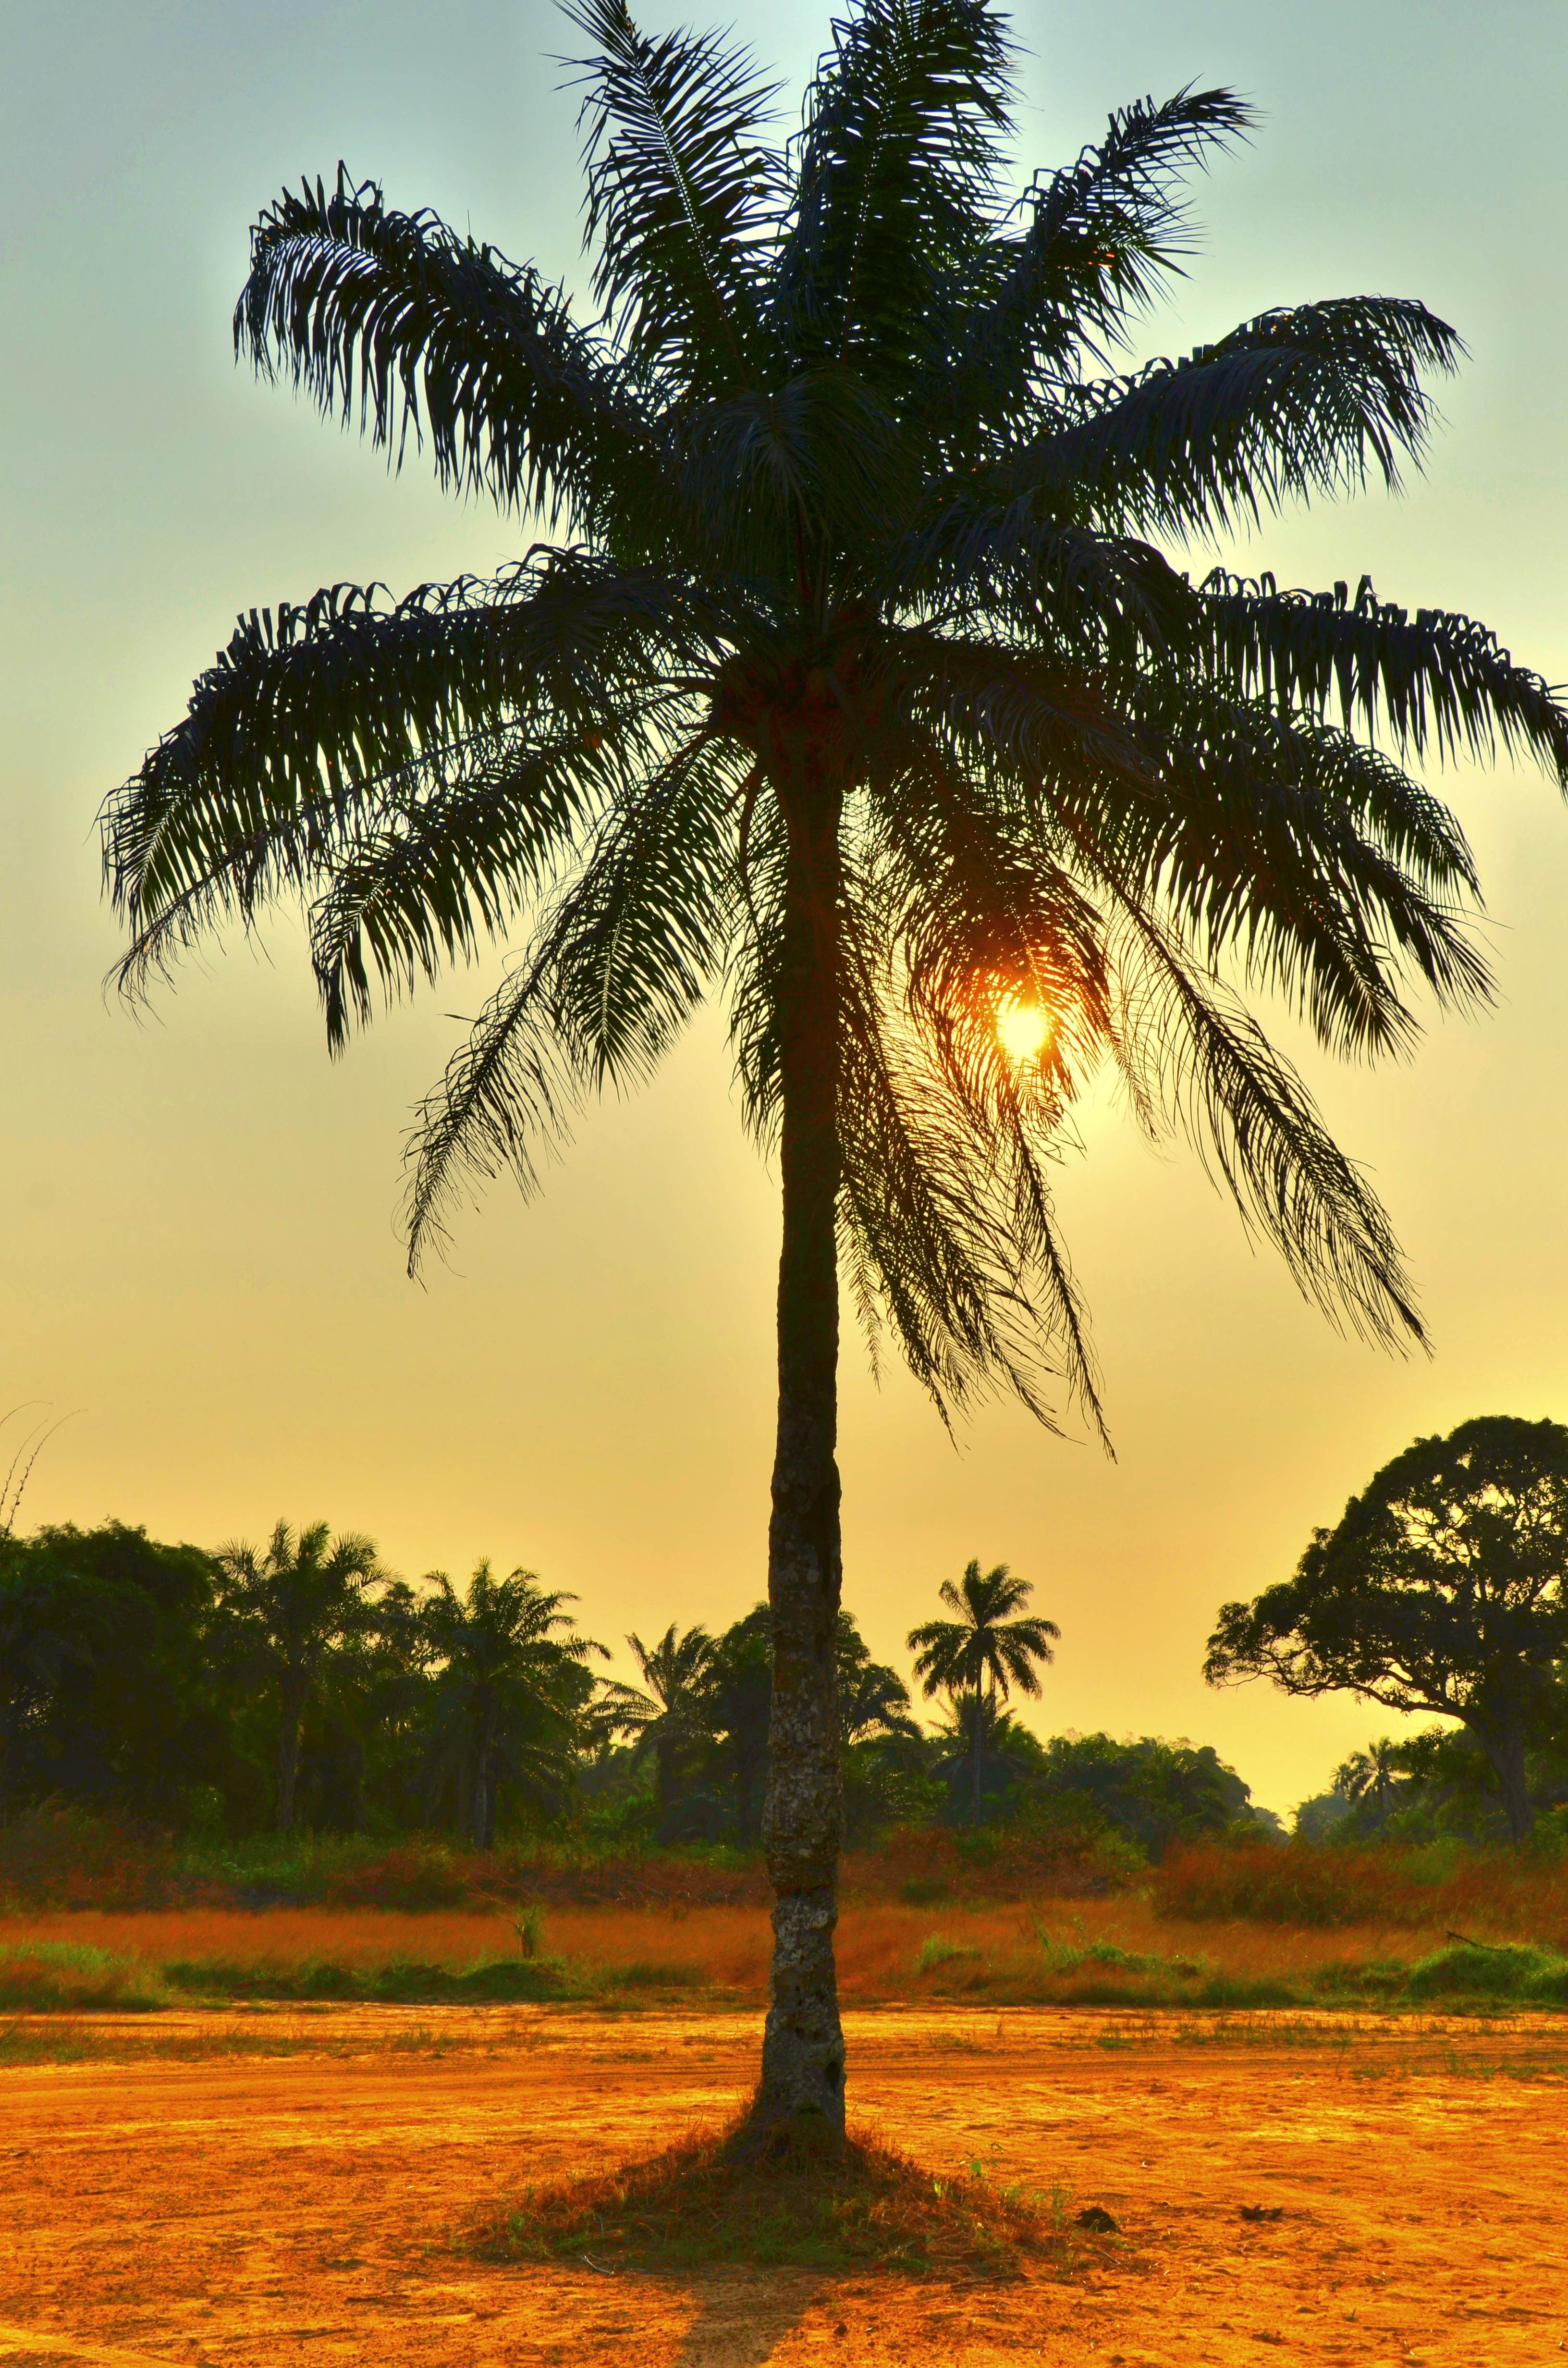 Sunlight Streaming Through A Palm Tree In Point Noire The Congo Continentes Africanas Oeste